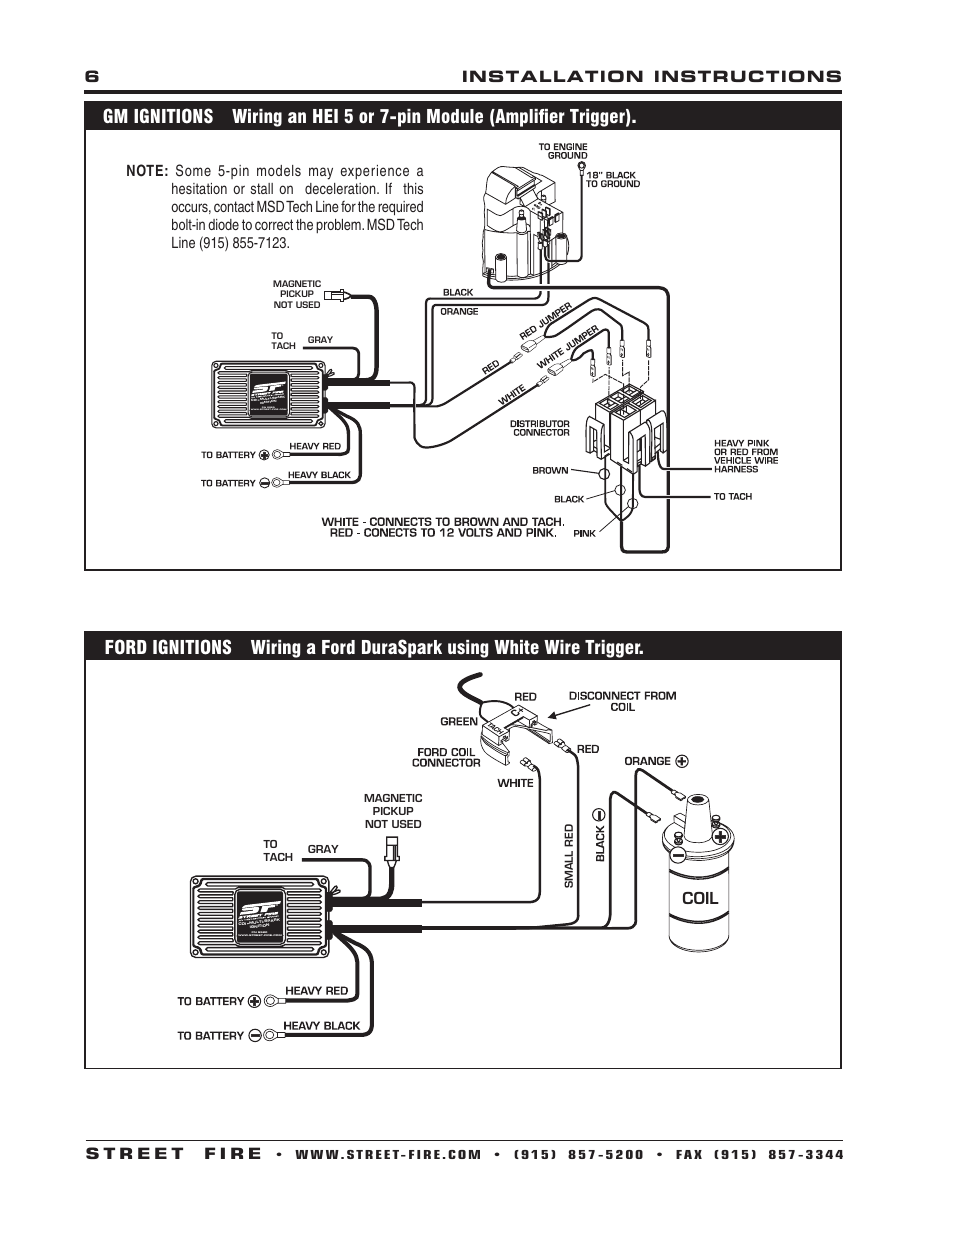 Hvc 6600 Wiring Diagram Ignition Best Electrical Circuit Detailed Diagrams Rh Standrewsthorntonheath Co Uk Basic Switch